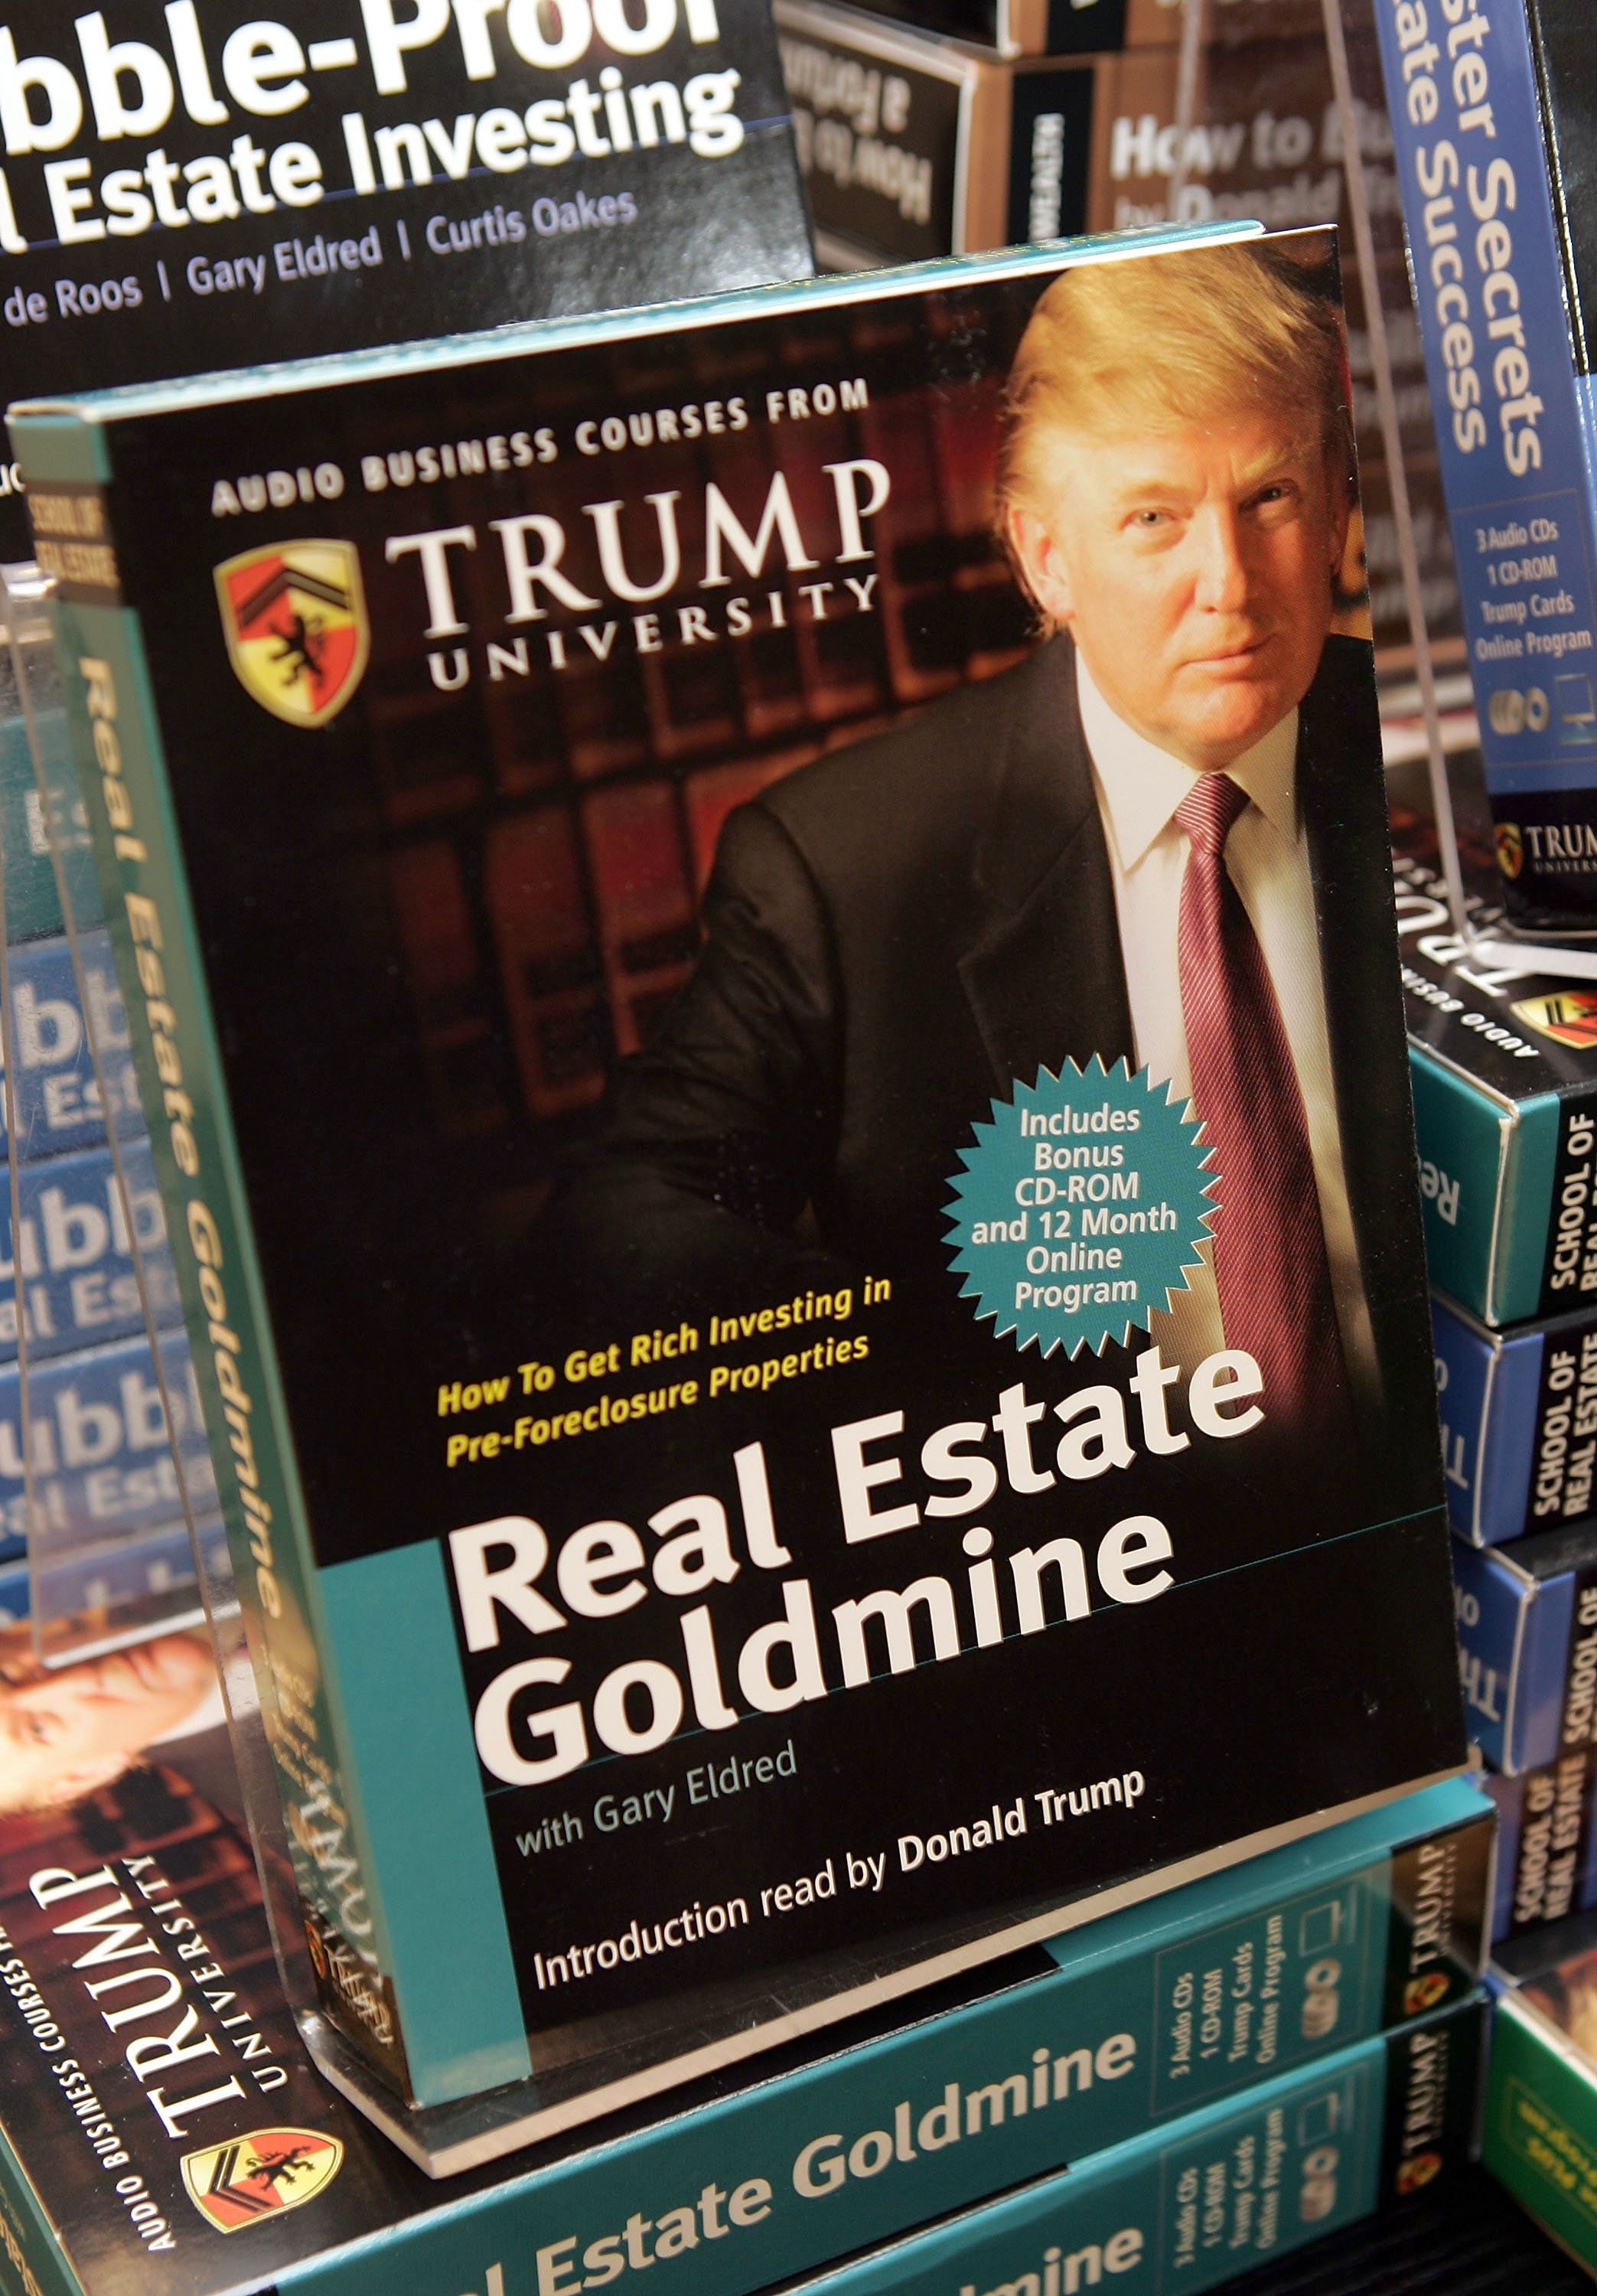 Copies of the Trump University's How to Build Wealth at a Barnes & Noble store in 2005...